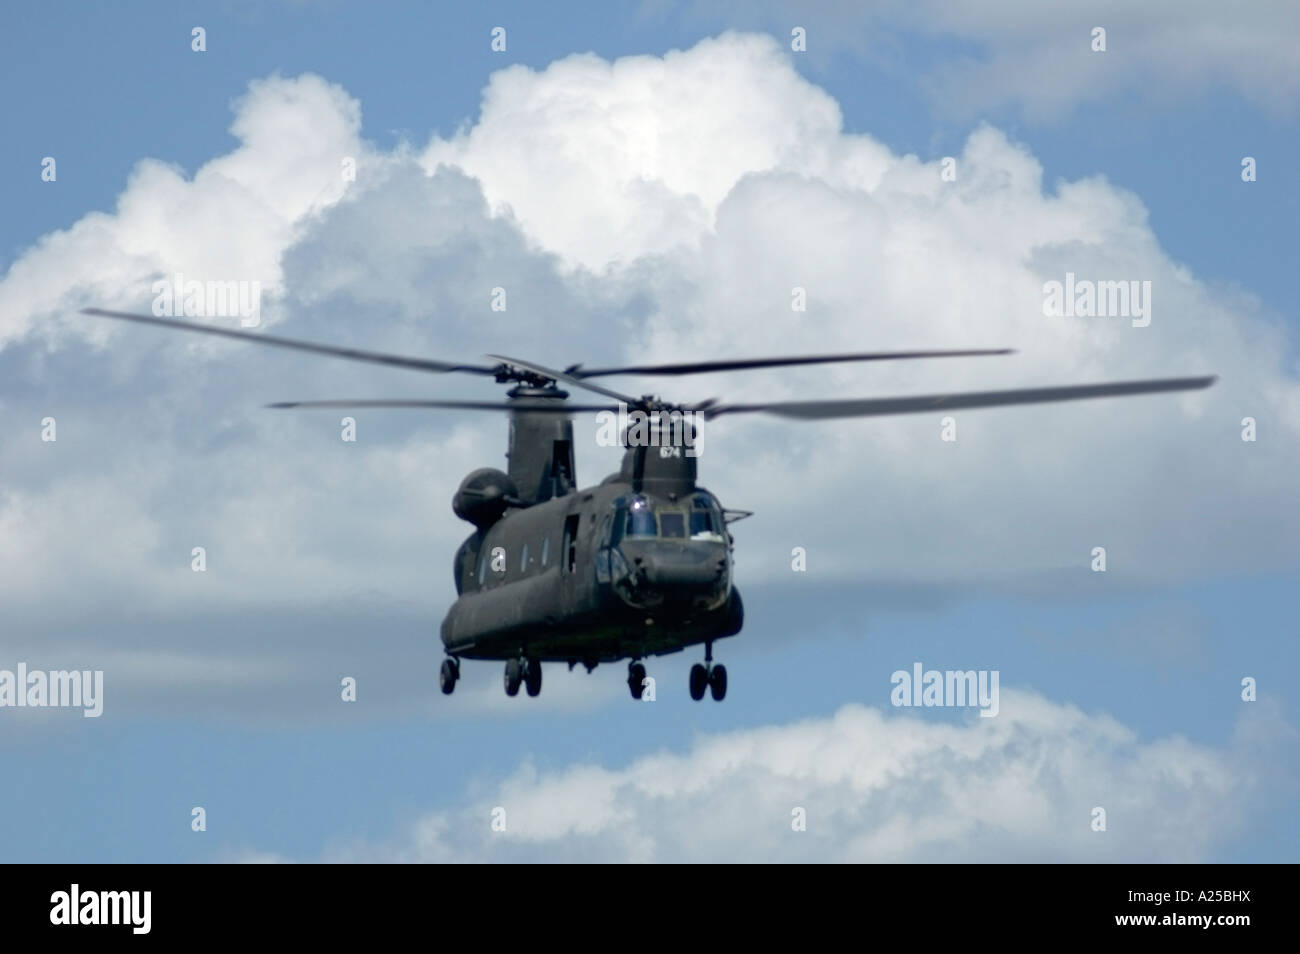 Air National Guard Helicopter - Stock Image